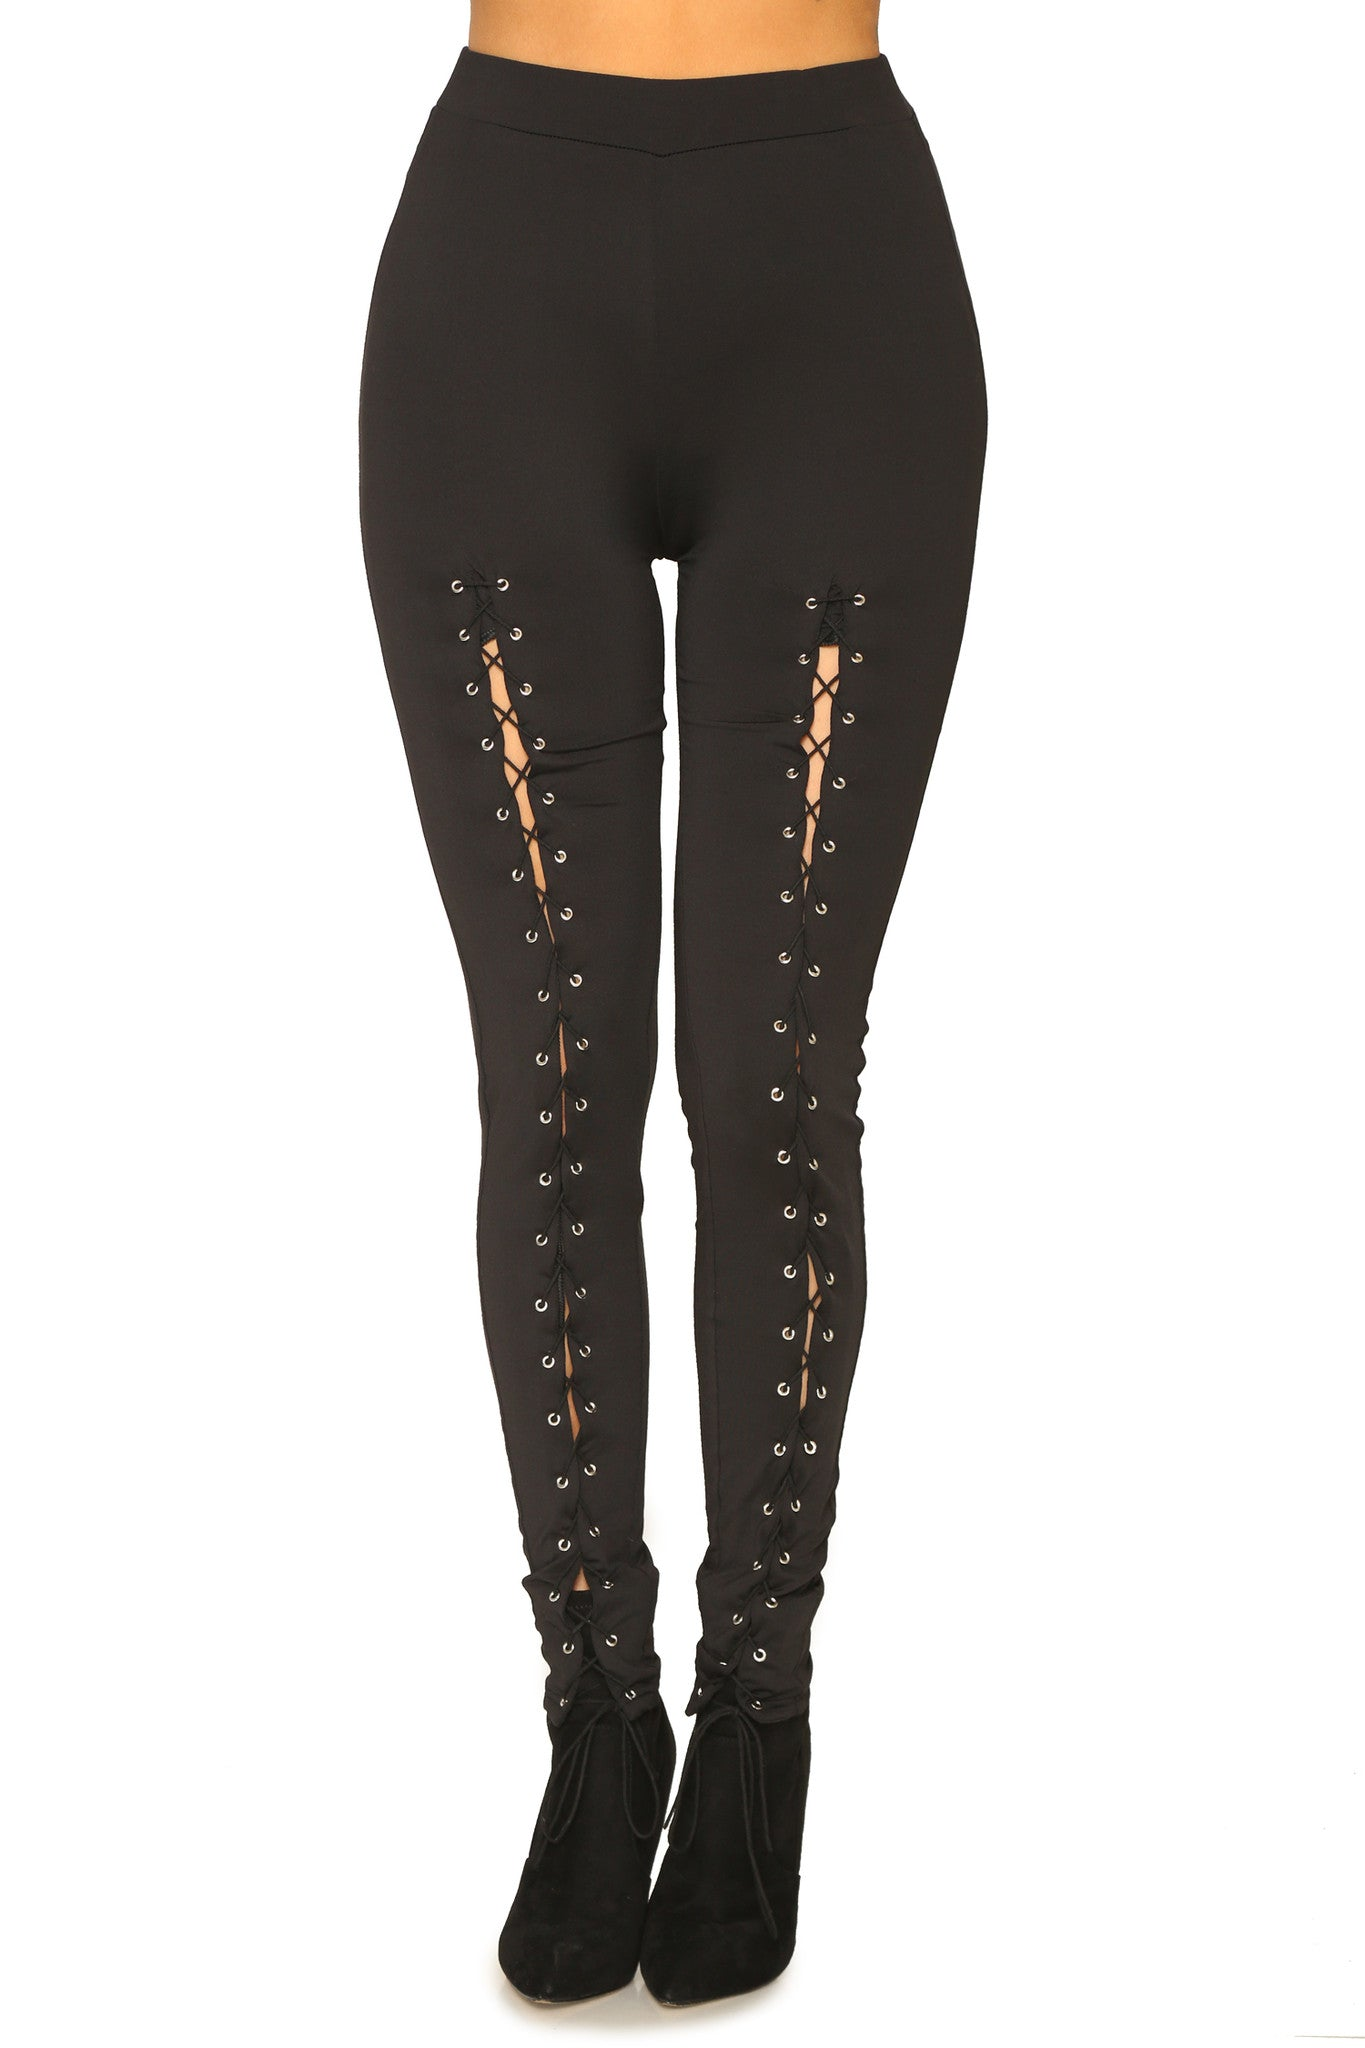 LACE ME UP LEGGINGS - Glam Envy - 1